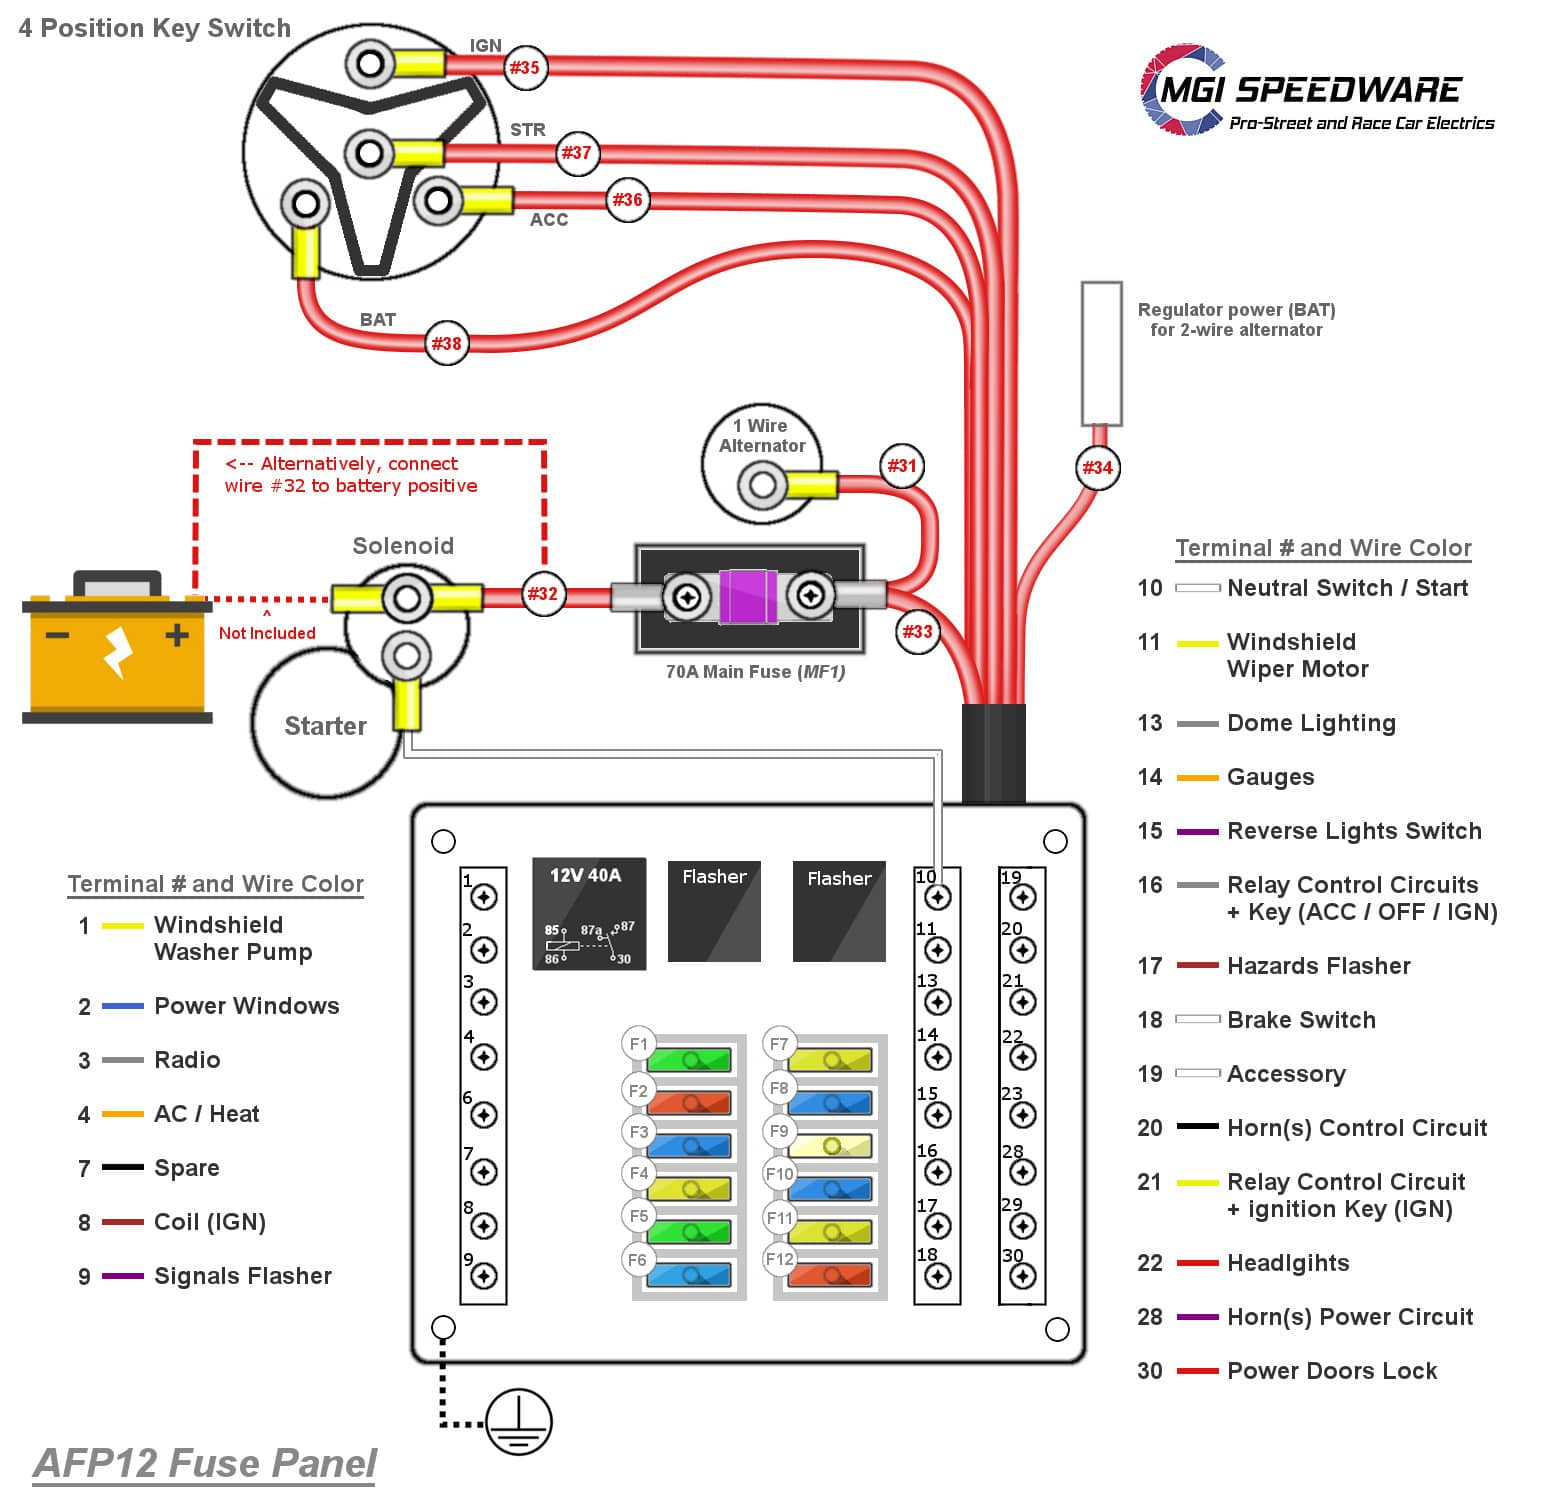 [WQZT_9871]  DIAGRAM] Residential Wiring Diagram Fuse Box FULL Version HD Quality Fuse  Box - 1WIRINGTELECASTER1.LALIBRAIRIEDELOUVIERS.FR | Wiring Diagram Rv Tutorial Download Fuse Box |  | 1wiringtelecaster1.lalibrairiedelouviers.fr